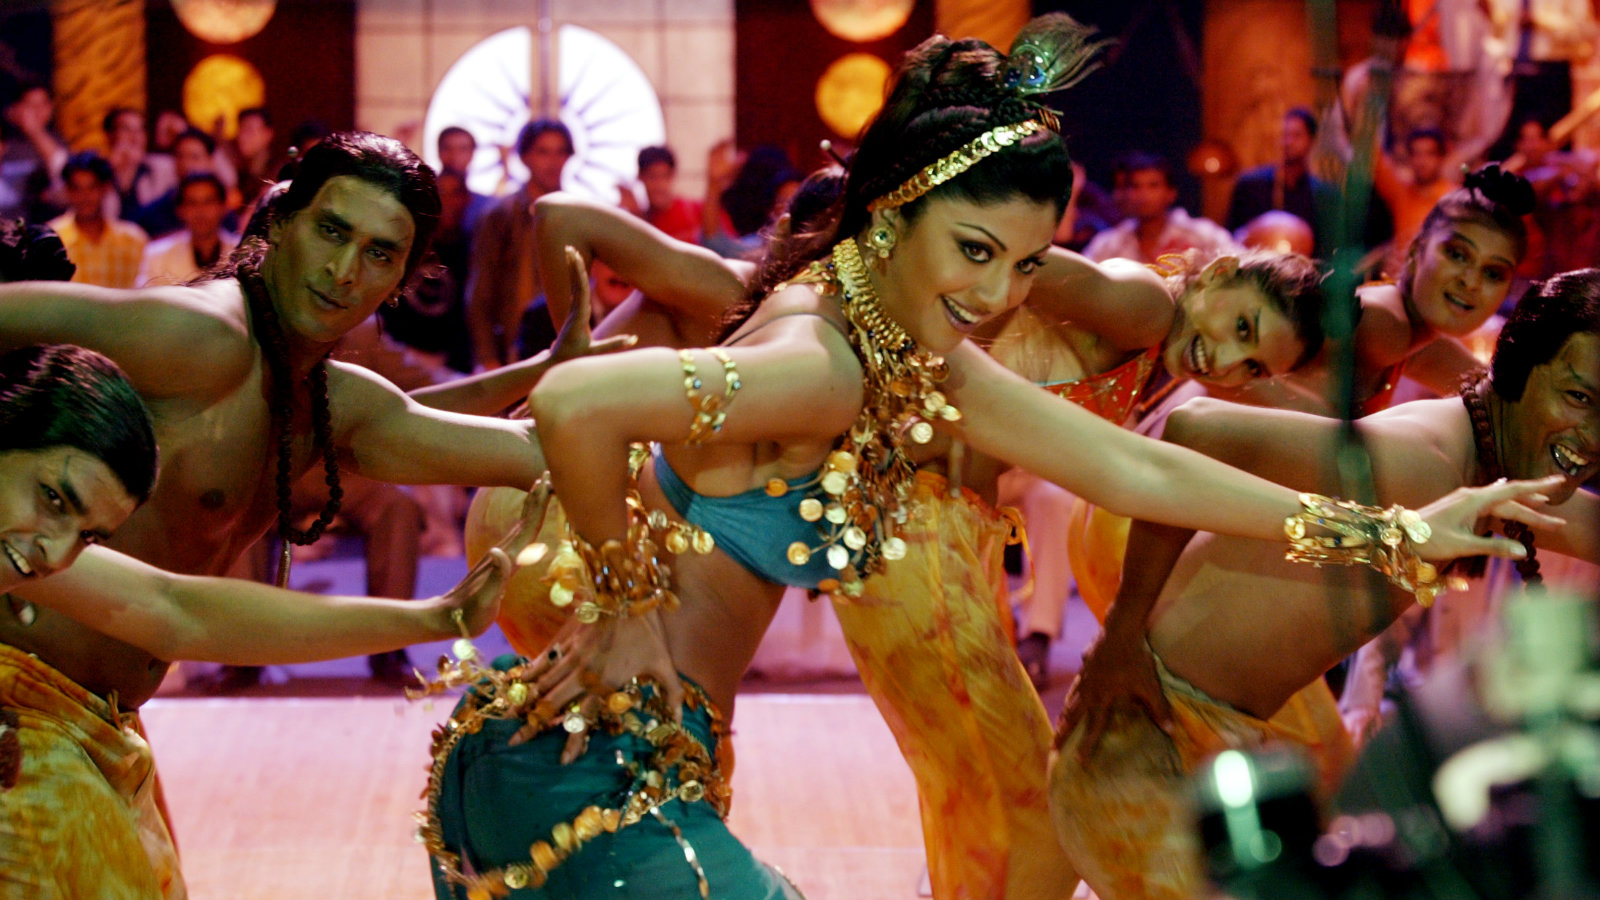 """Popular Bollywood star Shilpa Shetty (C) dances with co-artists during the shooting of a song sequence for her new Indian film """"Khamosh"""" (Quiet) in Bombay in this picture taken May 11, 2004. A thriller, the film is in it's early stage of production. Photo taken late May 11, 2004."""